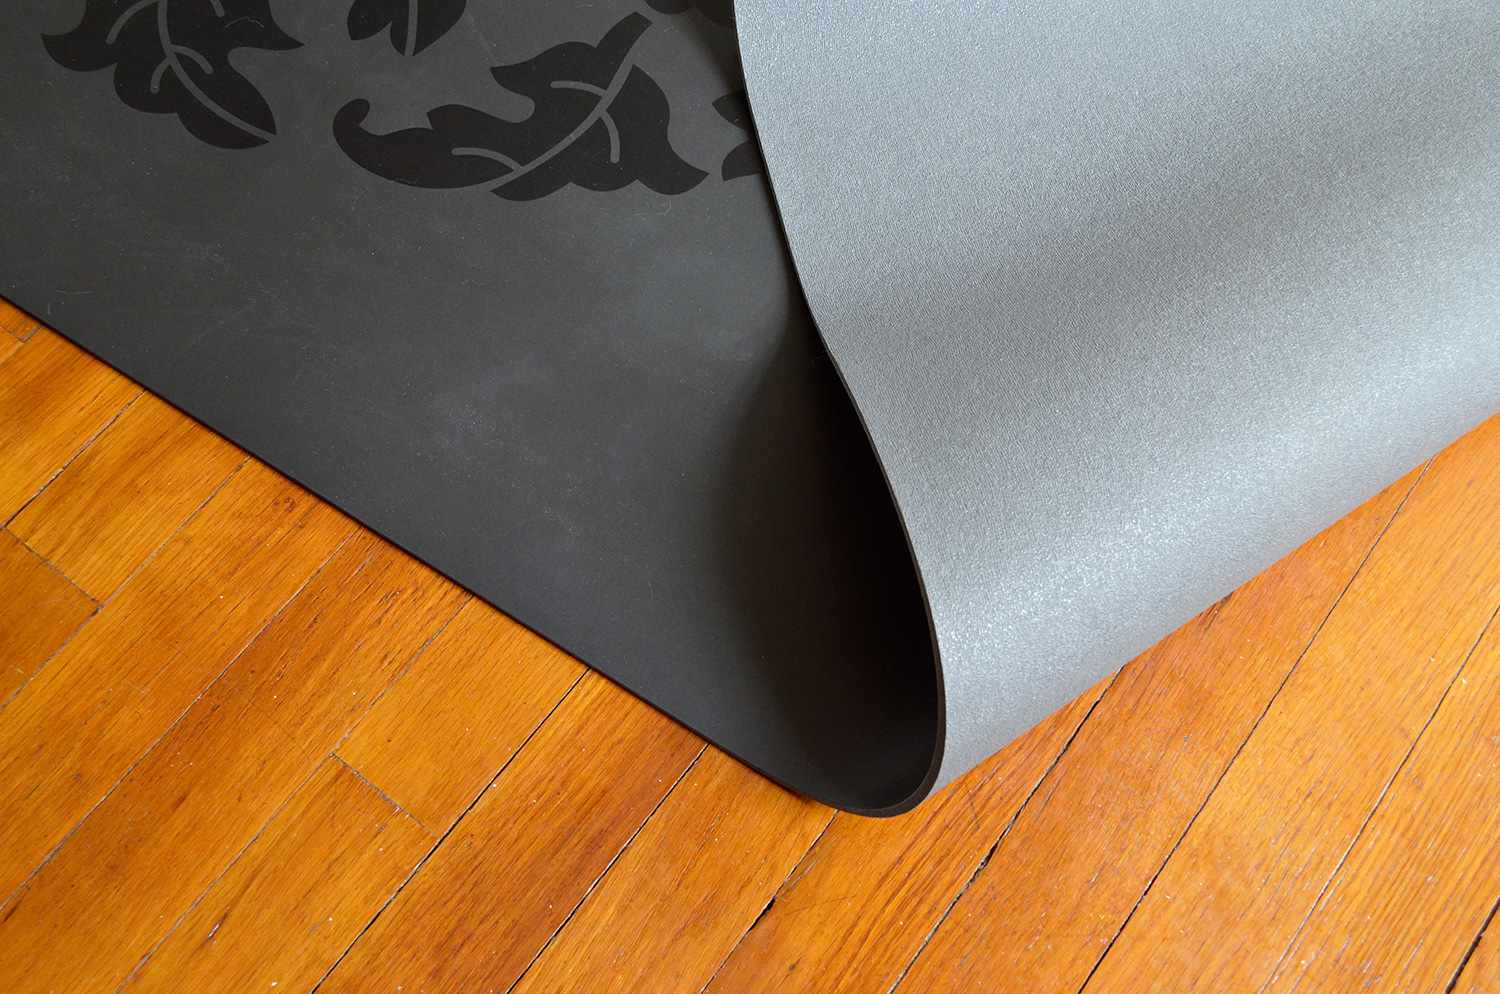 Gaiam Dry Grip Yoga Mat Review Not Slippery When Wet